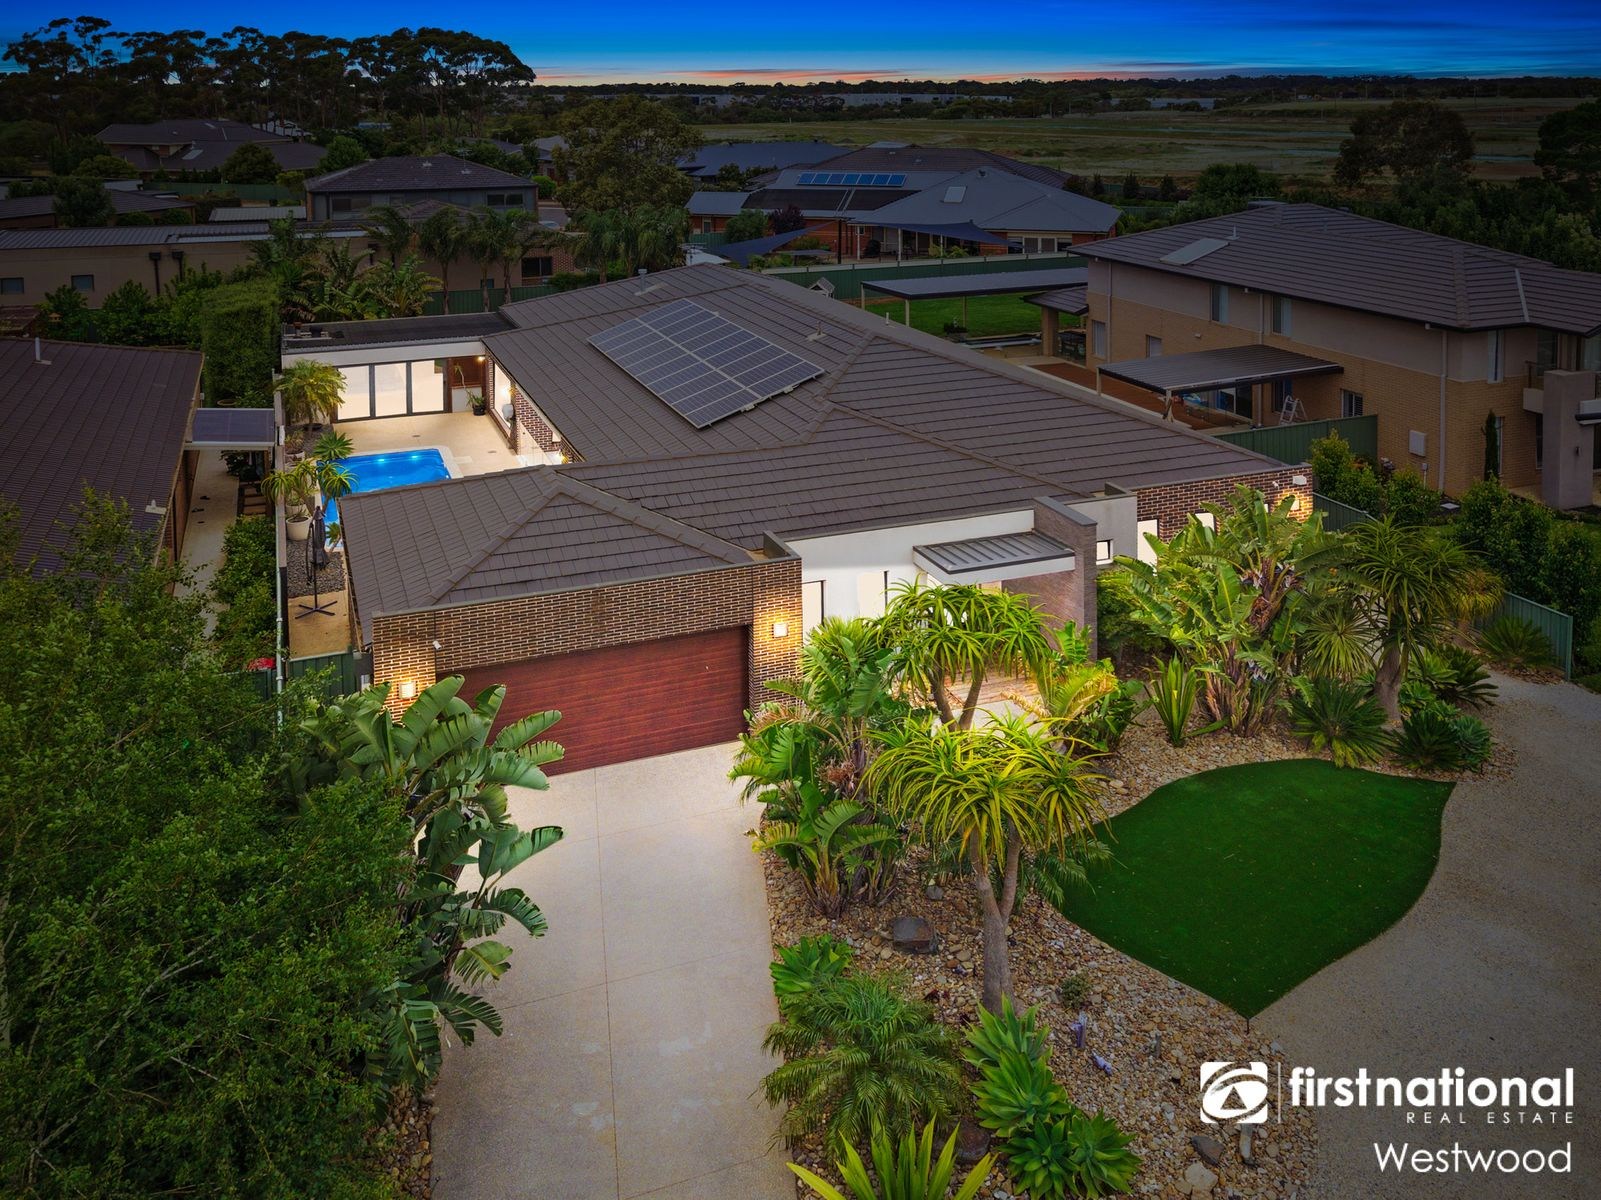 22 Traminer Row, Werribee, VIC 3030